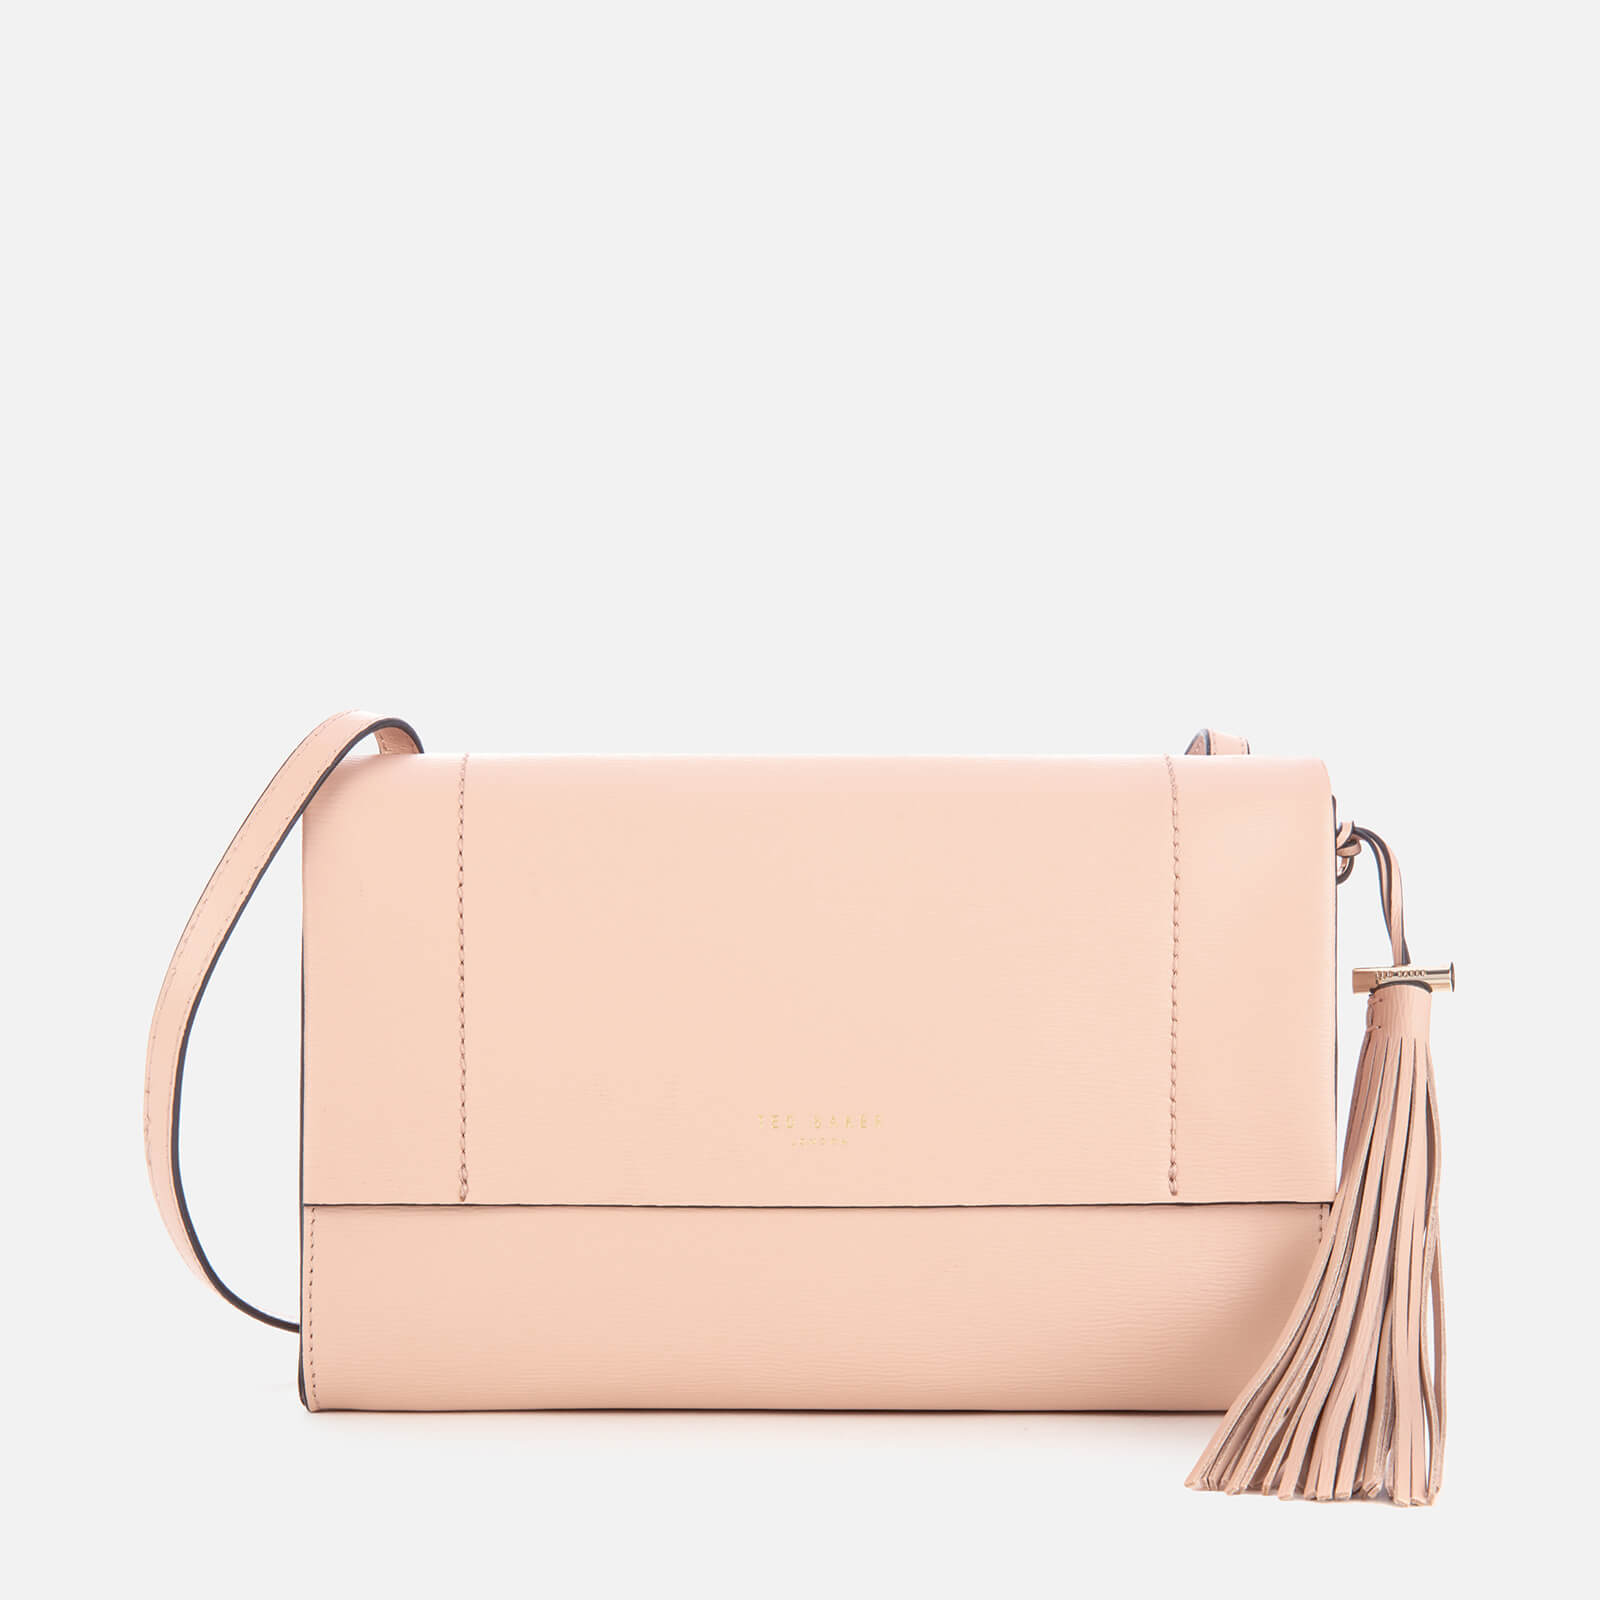 Ted Baker Women's Natalei Leather Tassel Detail Cross Body Bag - Taupe 原價129英鎊 優惠價65